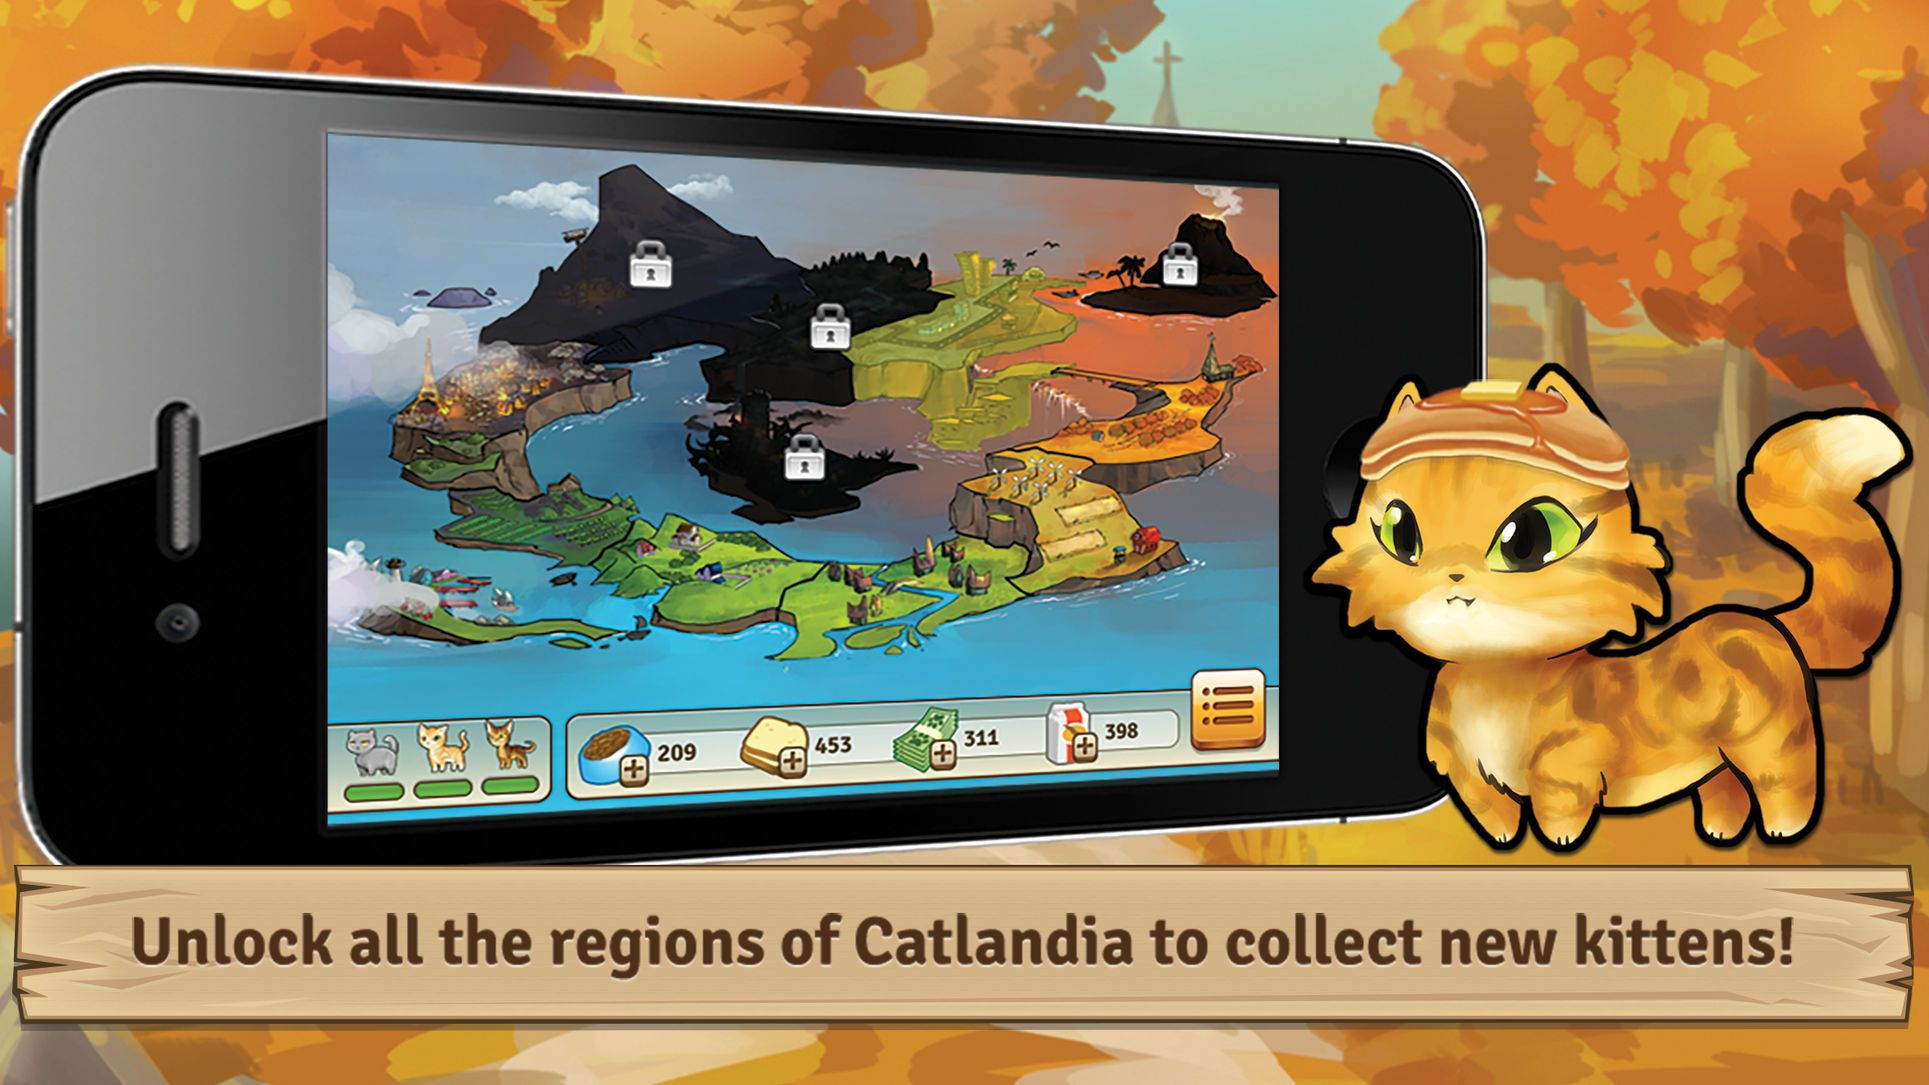 Bread Kittens Playing Role Ios Adventure Funny Games Kittens Animation